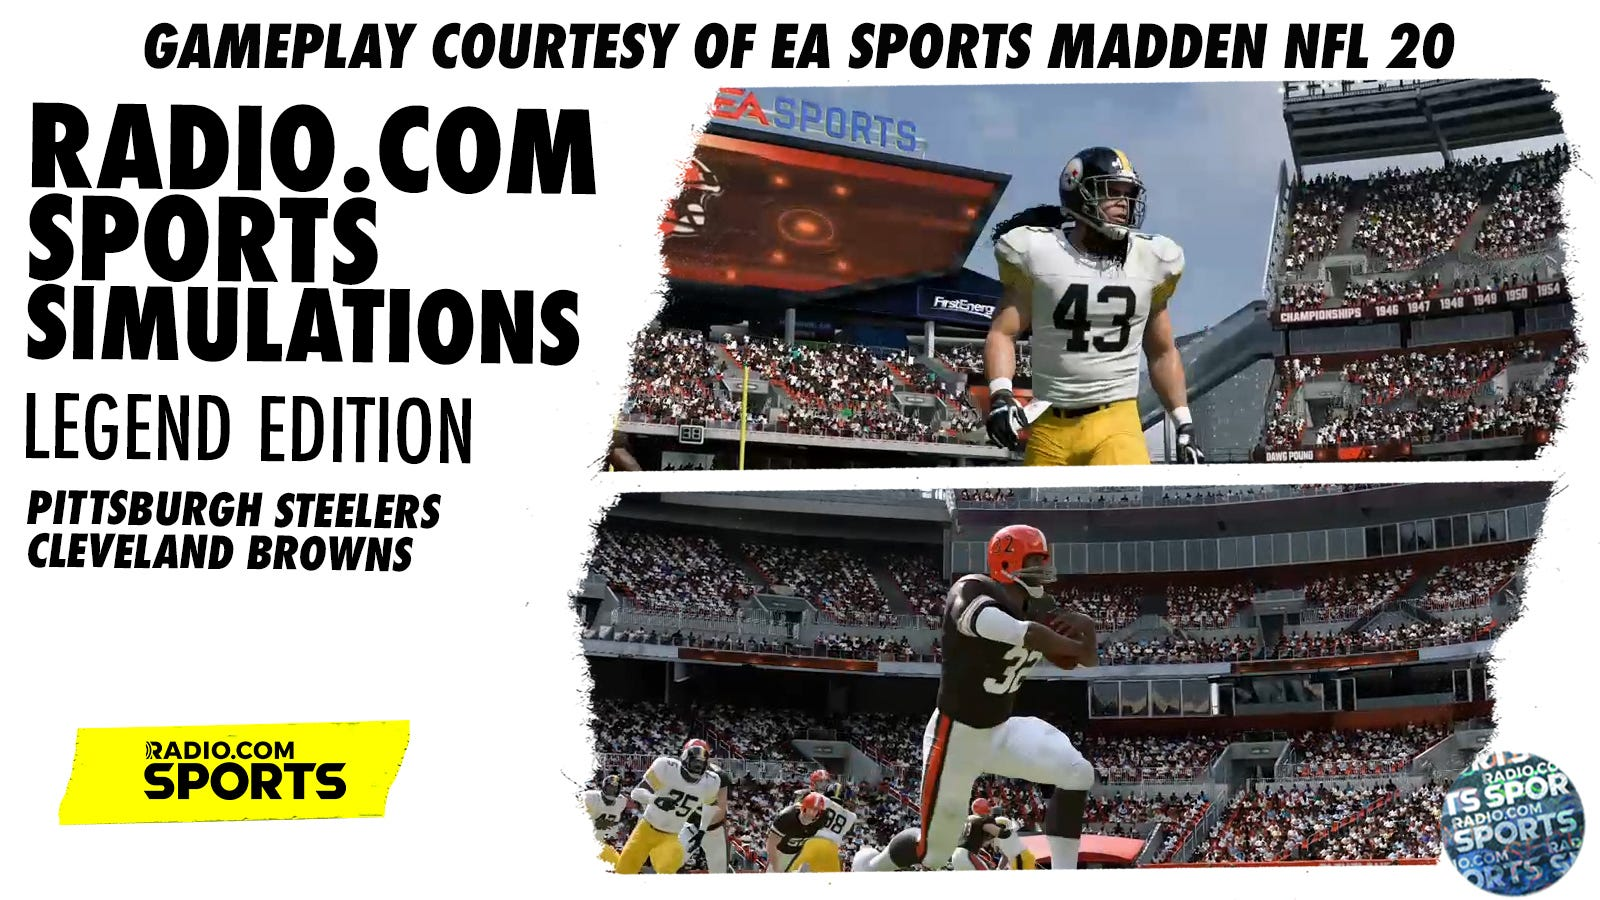 Madden 20 Sim Otto Graham Leads Browns Over Steelers Greats As the georgia runoffs arrive, a new book says the senate is broken. madden 20 sim otto graham leads browns